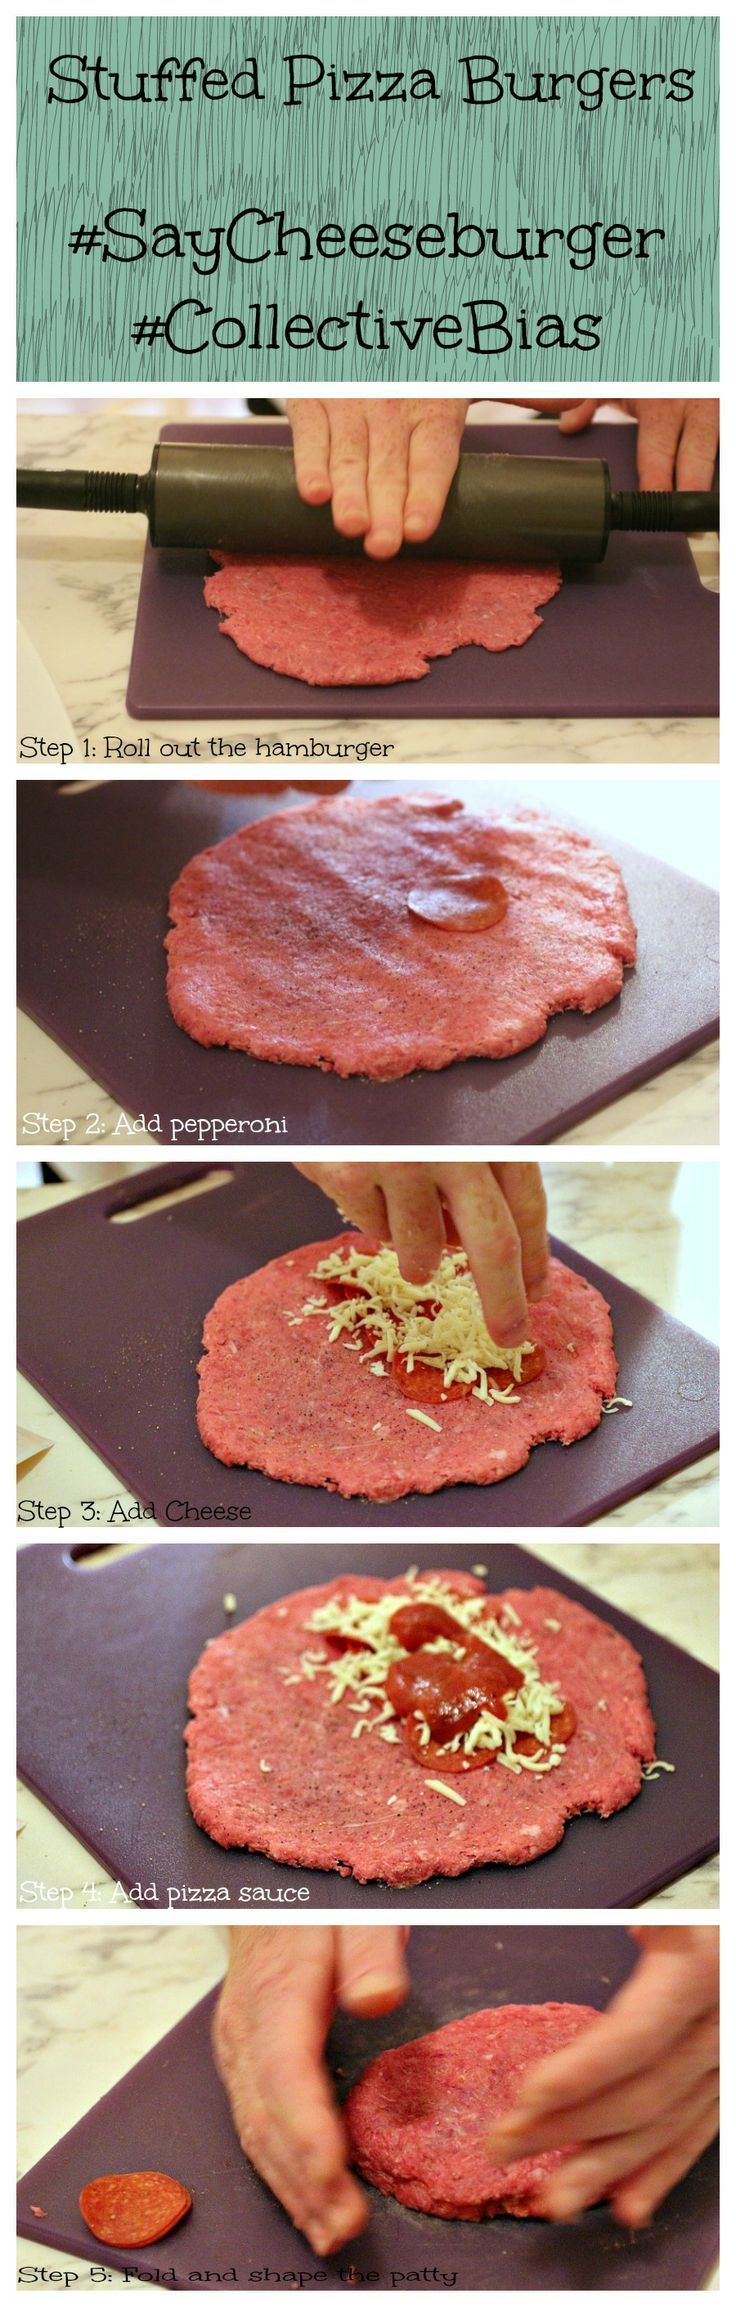 Easy recipe for making delicious stuffed pizza burgers on the grill. Learn how to make stuffed pizza burgers today!